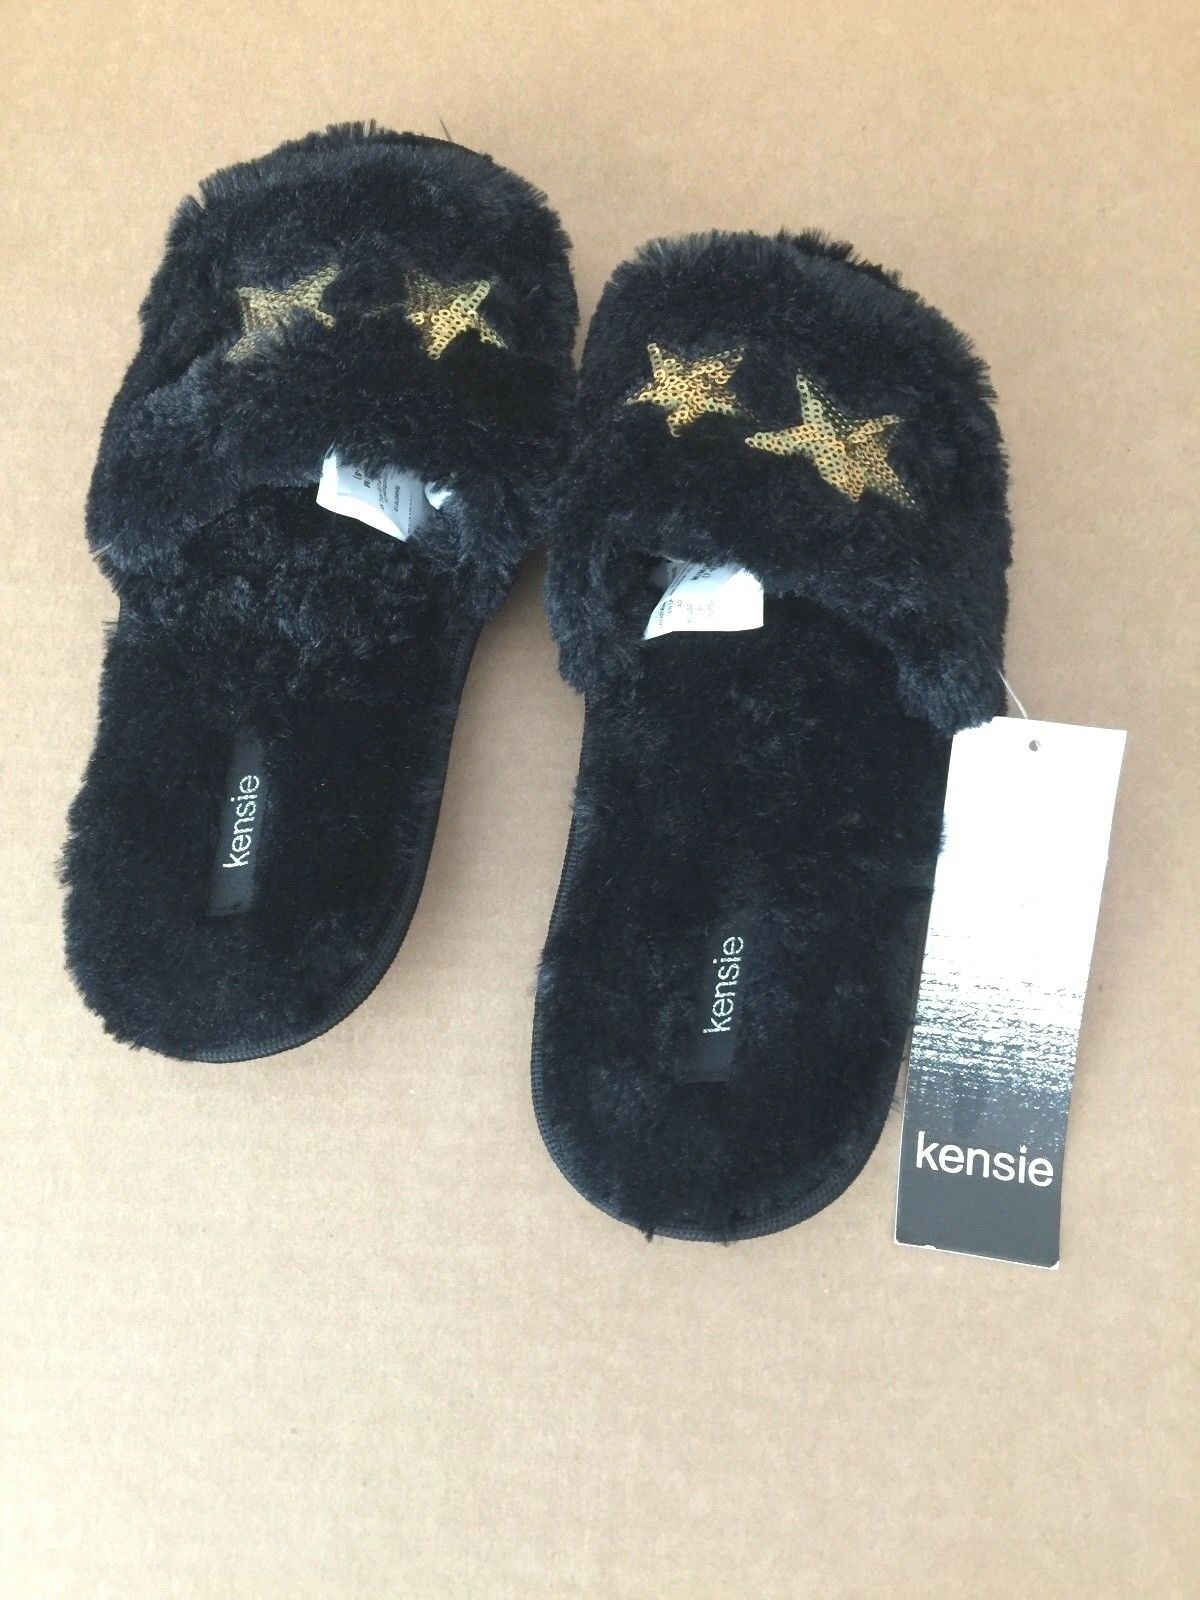 New Kensie Women Two (Sizes Small or Medium) Two Women Stars Slippers 100% Polyester Black d88268